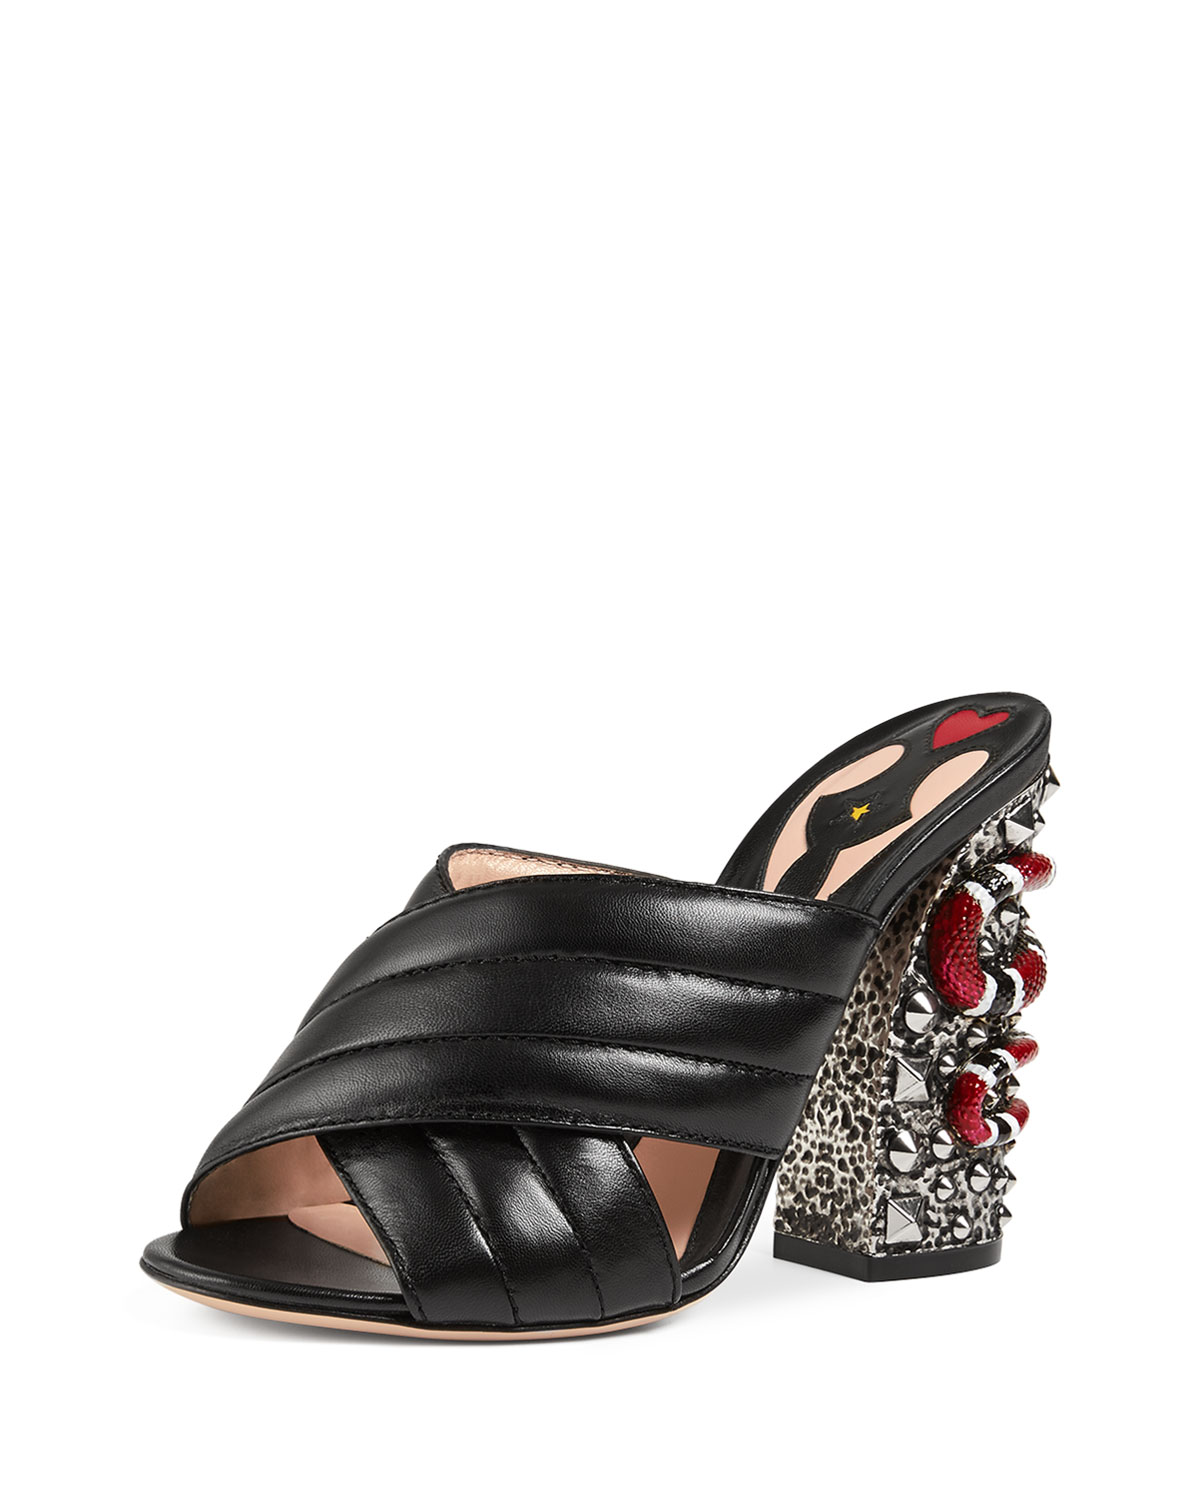 Gucci Webby Quilted Leather Snake-Heel Mule Sandal, Black, Women's, Size: 38.0B/8.0B